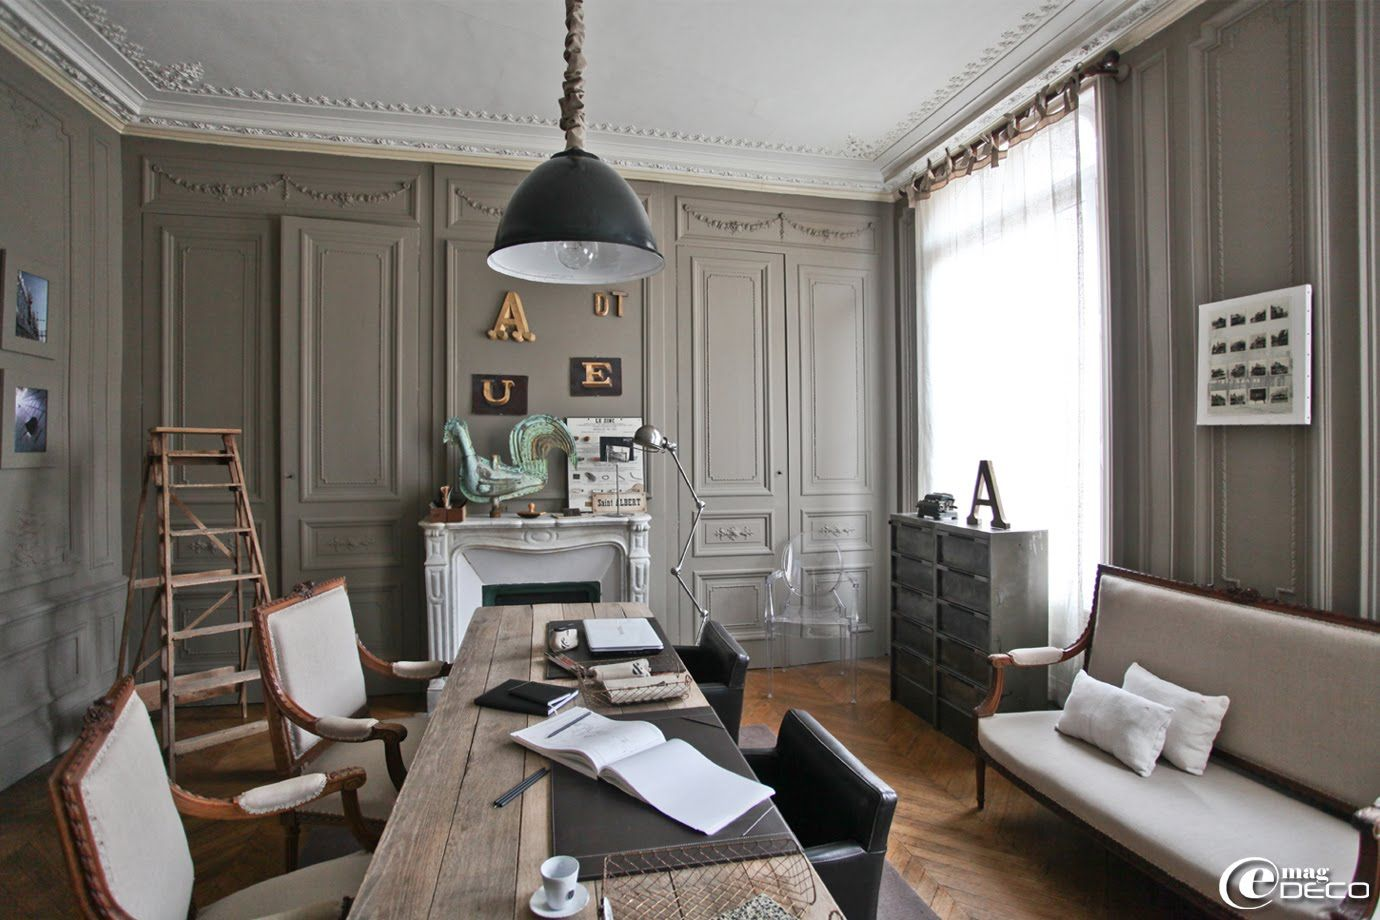 Funky Office Space From Inspiring Interiors Blog Interior Home Living Room Home